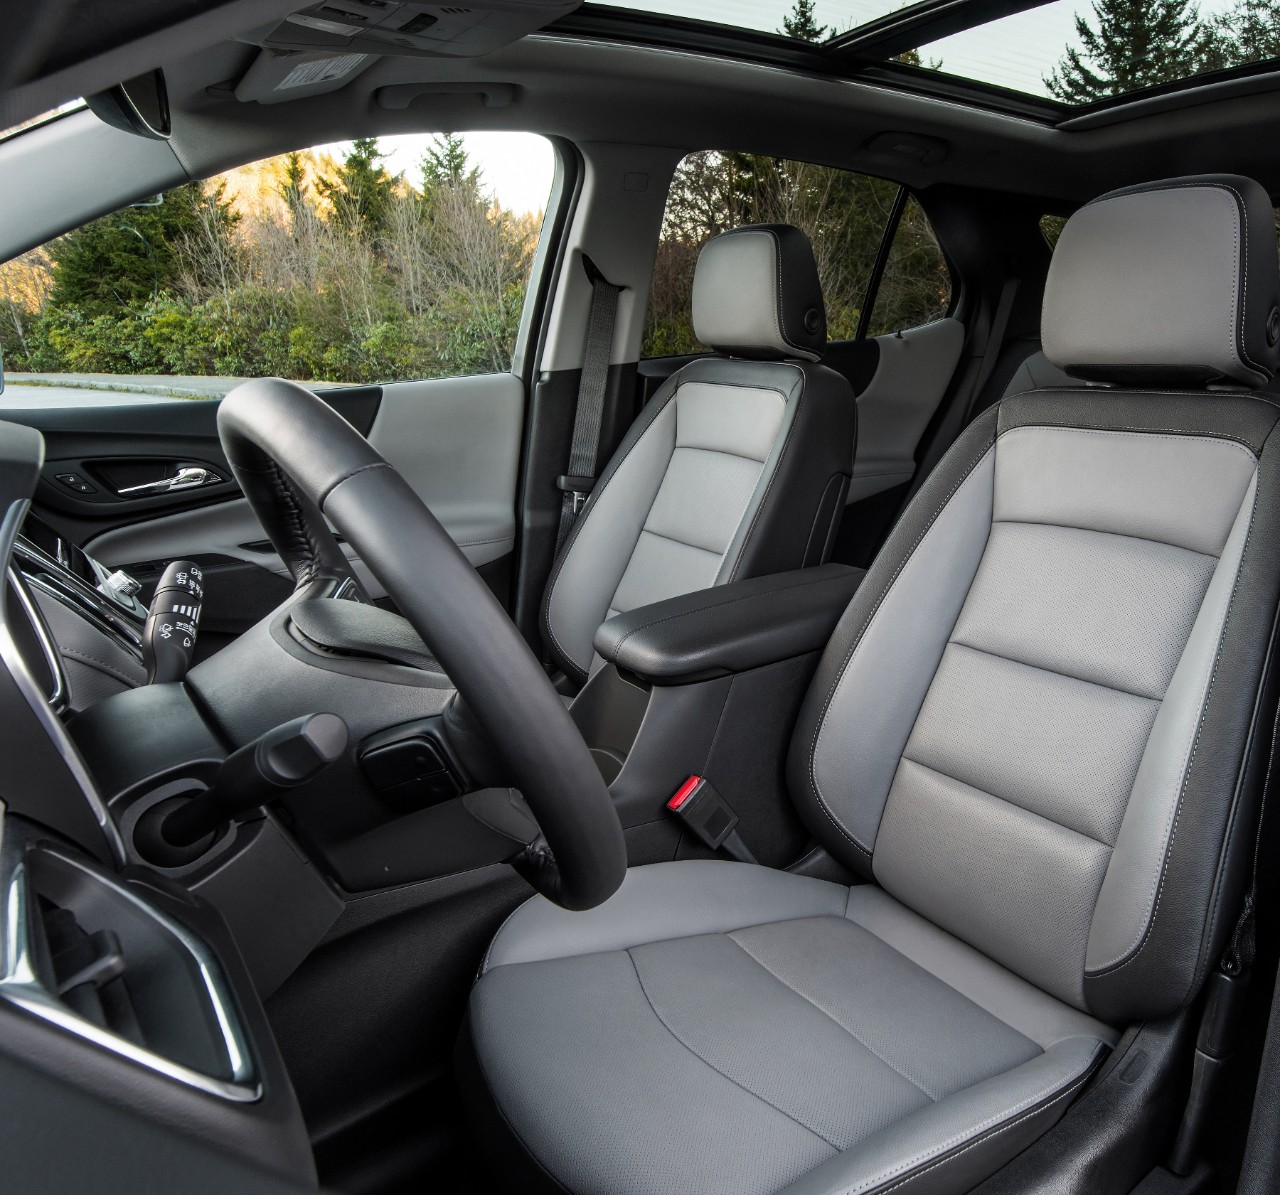 2018 Chevy Equinox Interior Color Options: Fear Not, Parents: 2018 Chevy Equinox Offered With Stain